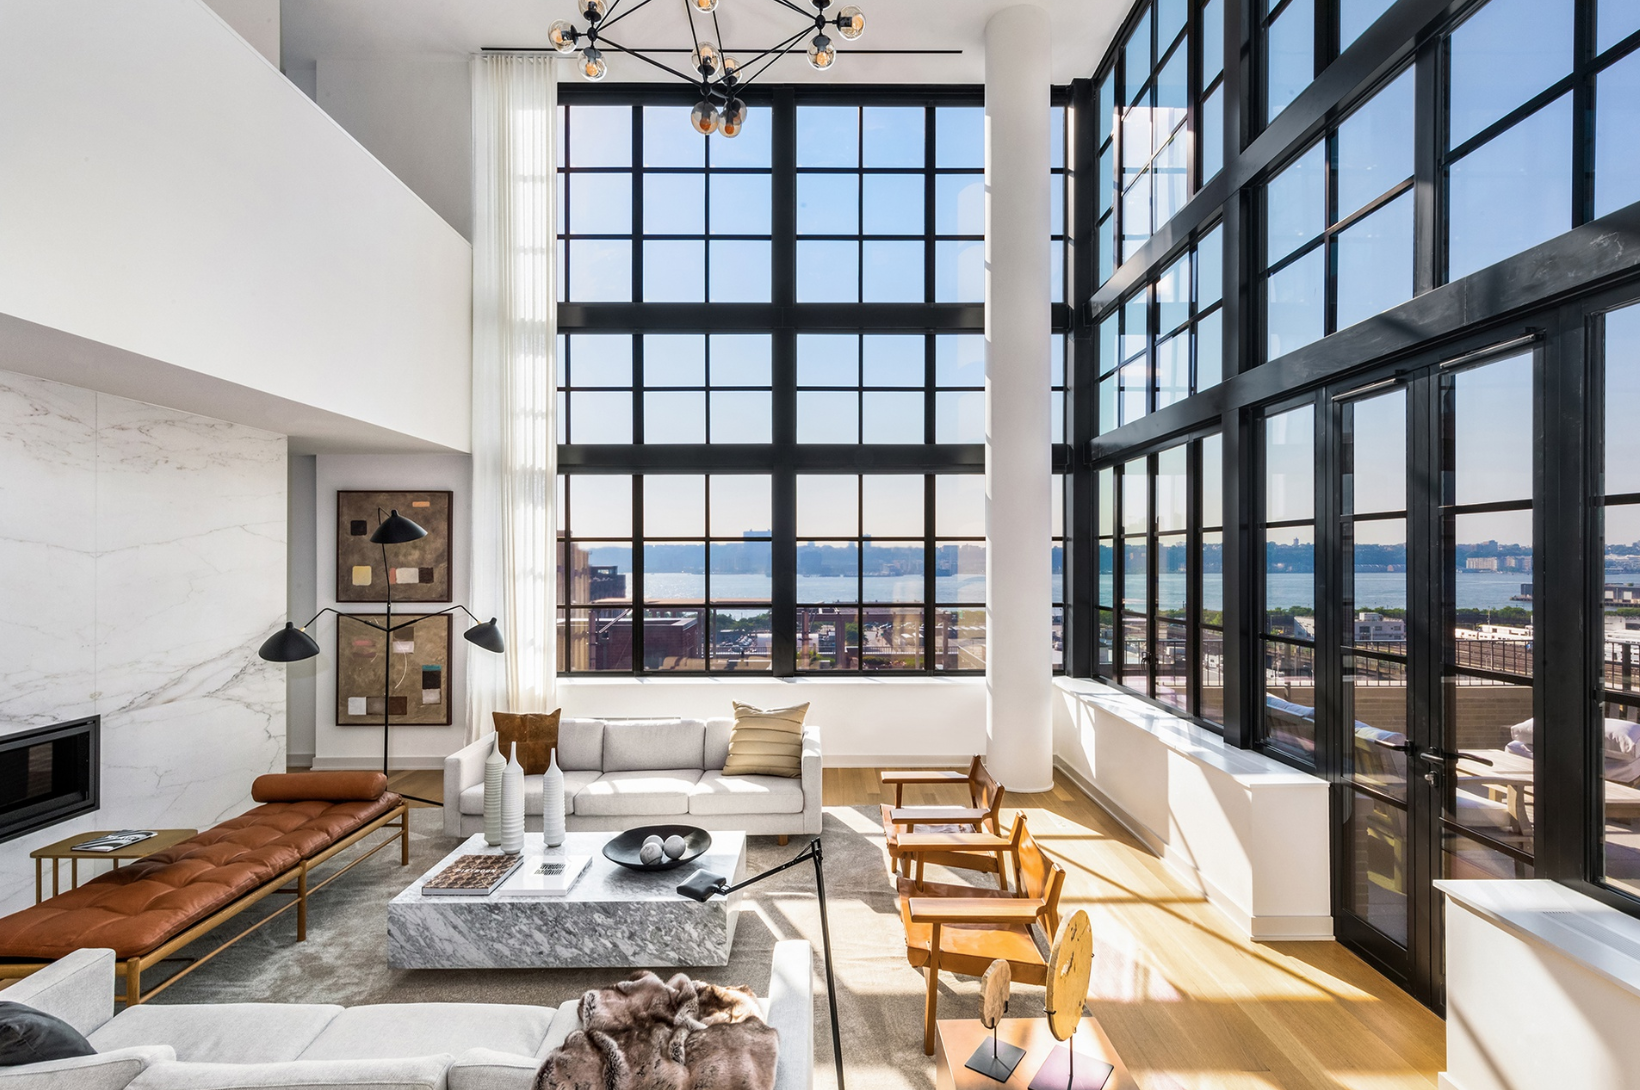 550 WEST 29TH STREET, PHC - $7,500,000 // 3 Beds // 3.5 Baths // 2,945 SQFT // 365 EXSFIntroducing SoHY | South of Hudson Yards, a brand new West Chelsea condominium nestled between the High Line and the Hudson River. Beneath a striking façade of limestone Roman bricks interspersed with massive metal casement windows, the building contains 19 stunning 3- and 4-bedroom units of remarkable quality and craftsmanship. Designed by Tamarkin Co., it is a testament both to the industry of the neighborhood's past and the vibrancy of the present and beyond.